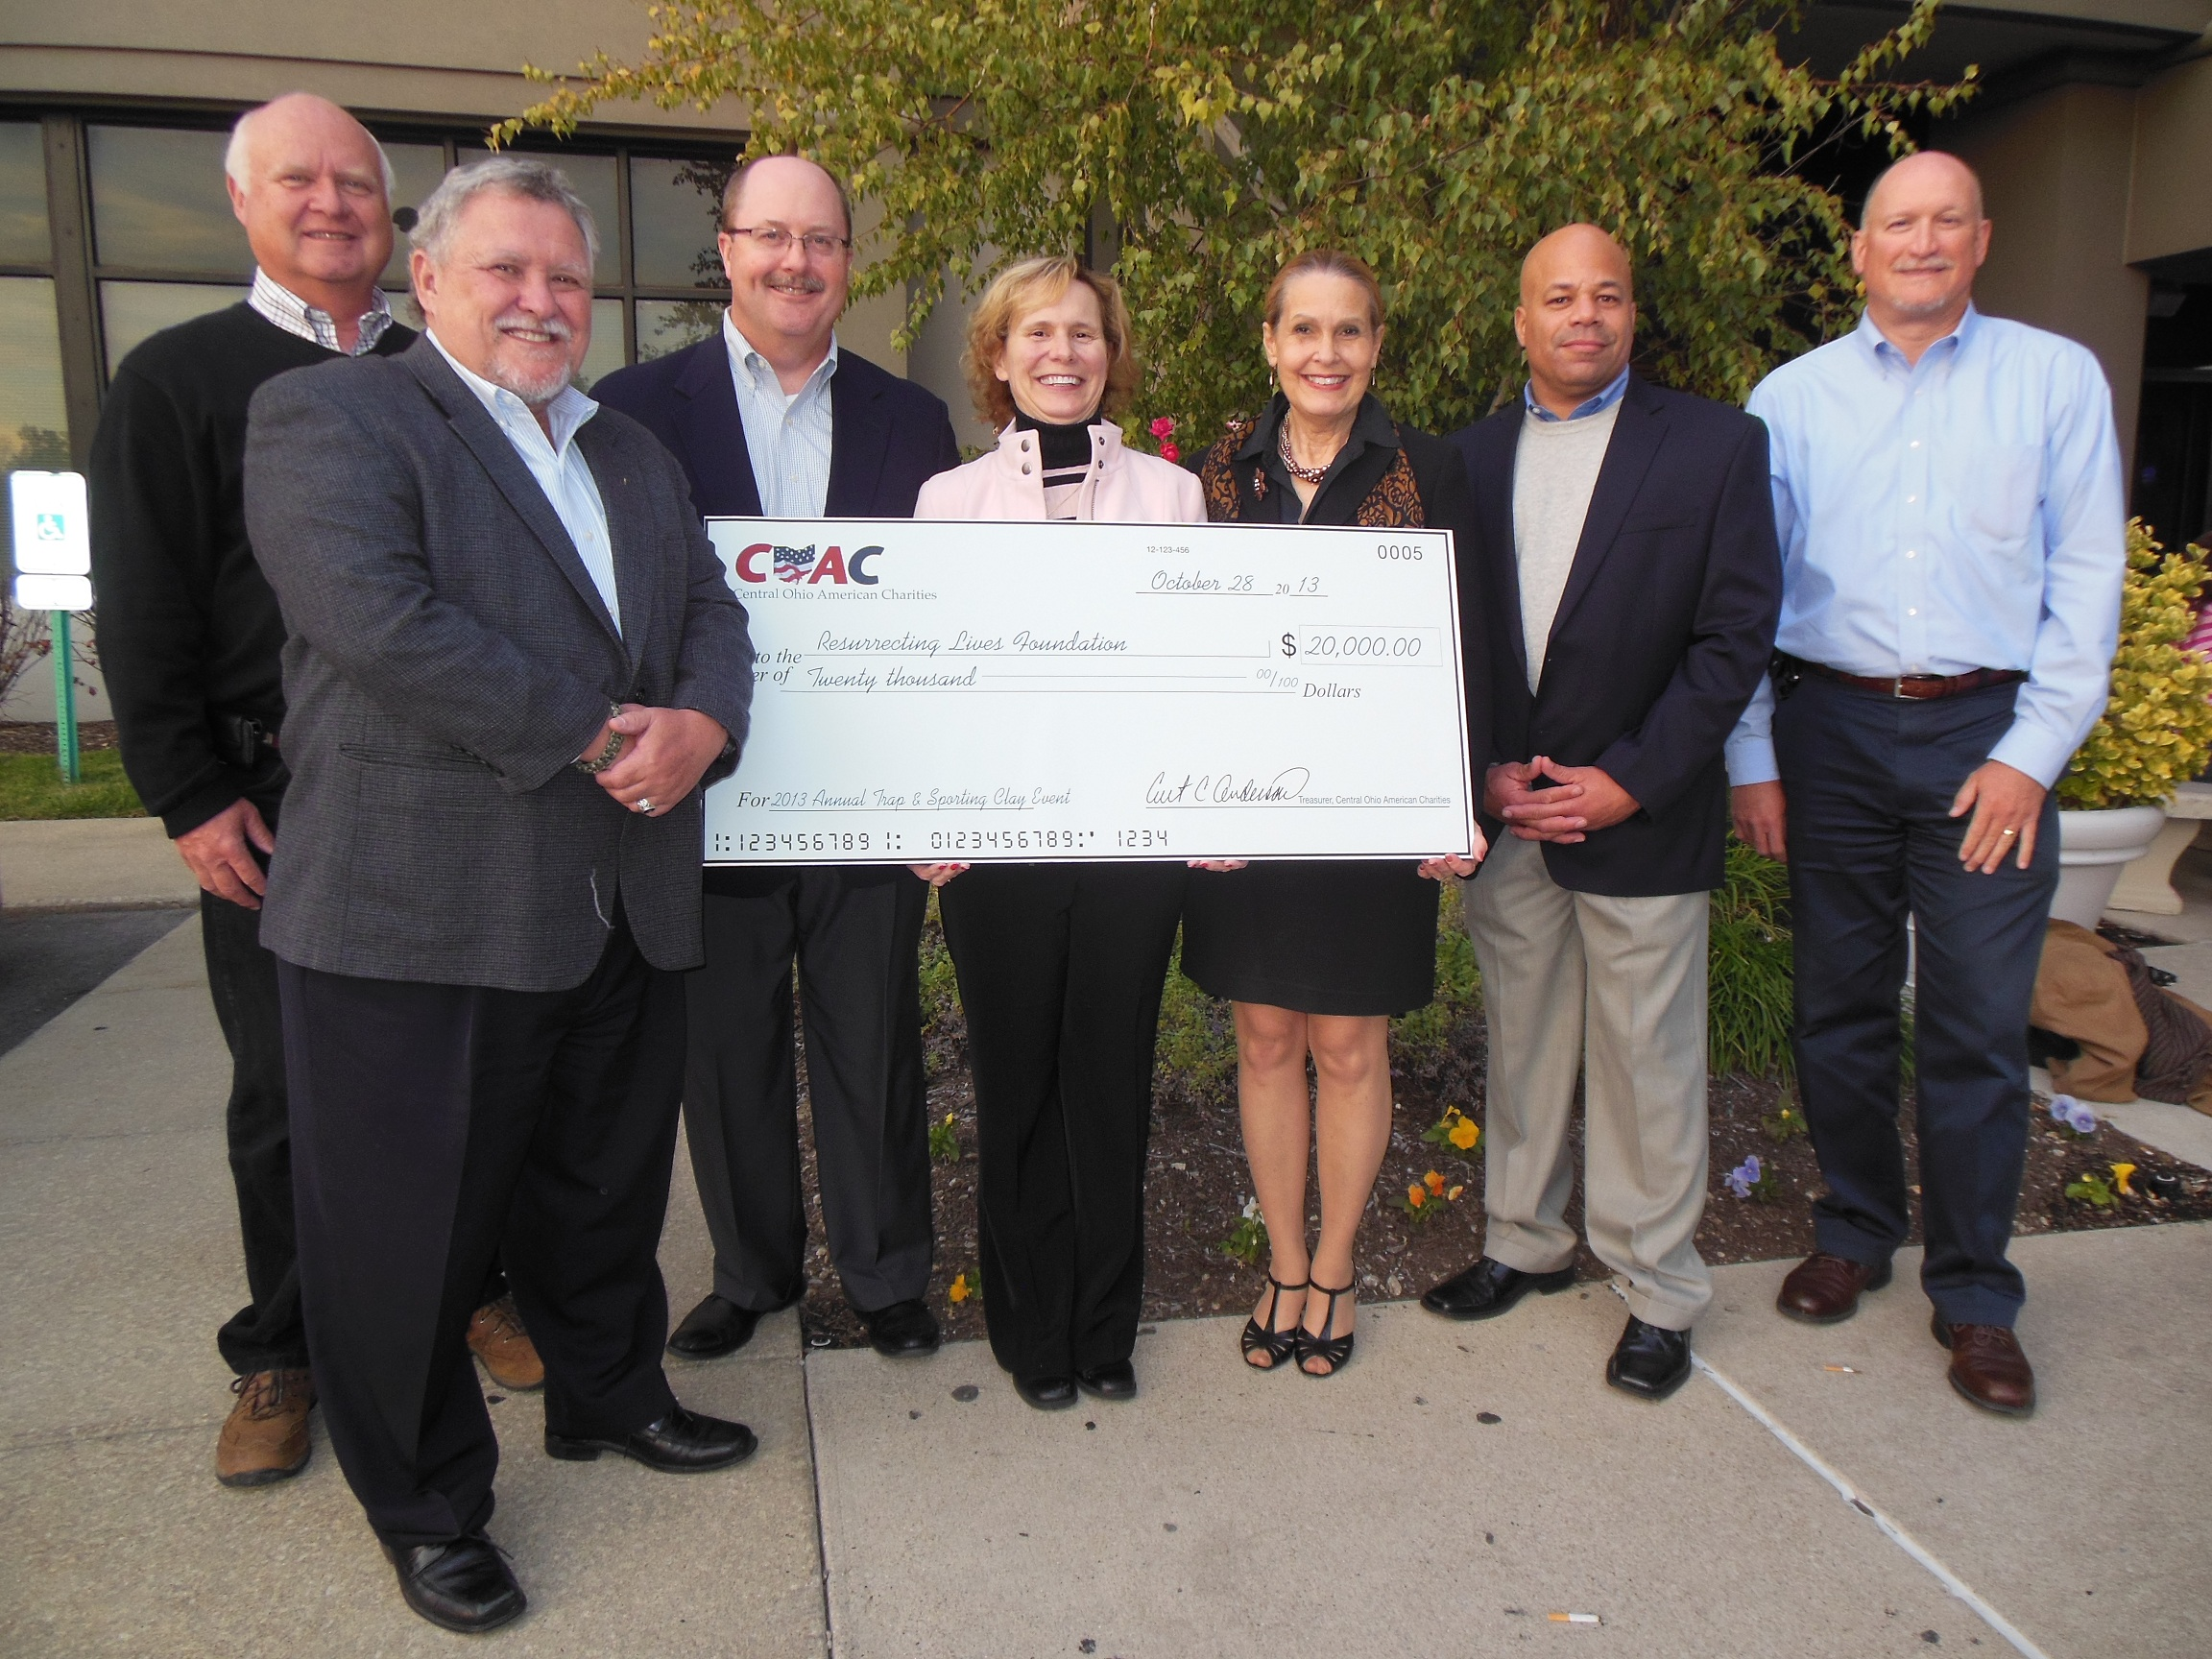 2013 COAC Donation to Resurrecting Lives - test